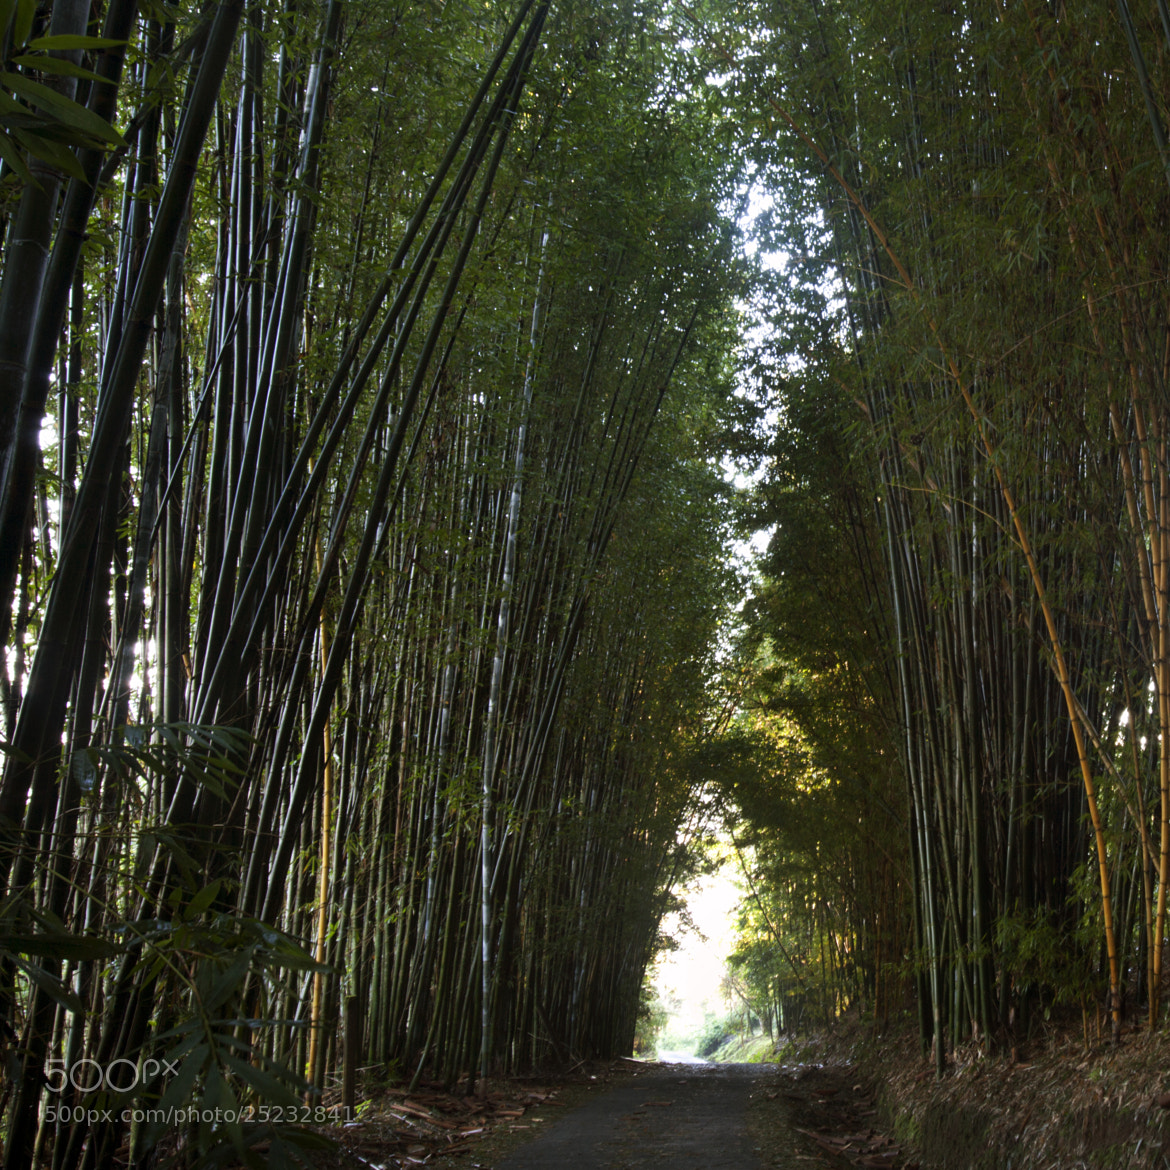 Photograph Bamboos by Cristobal Garciaferro Rubio on 500px